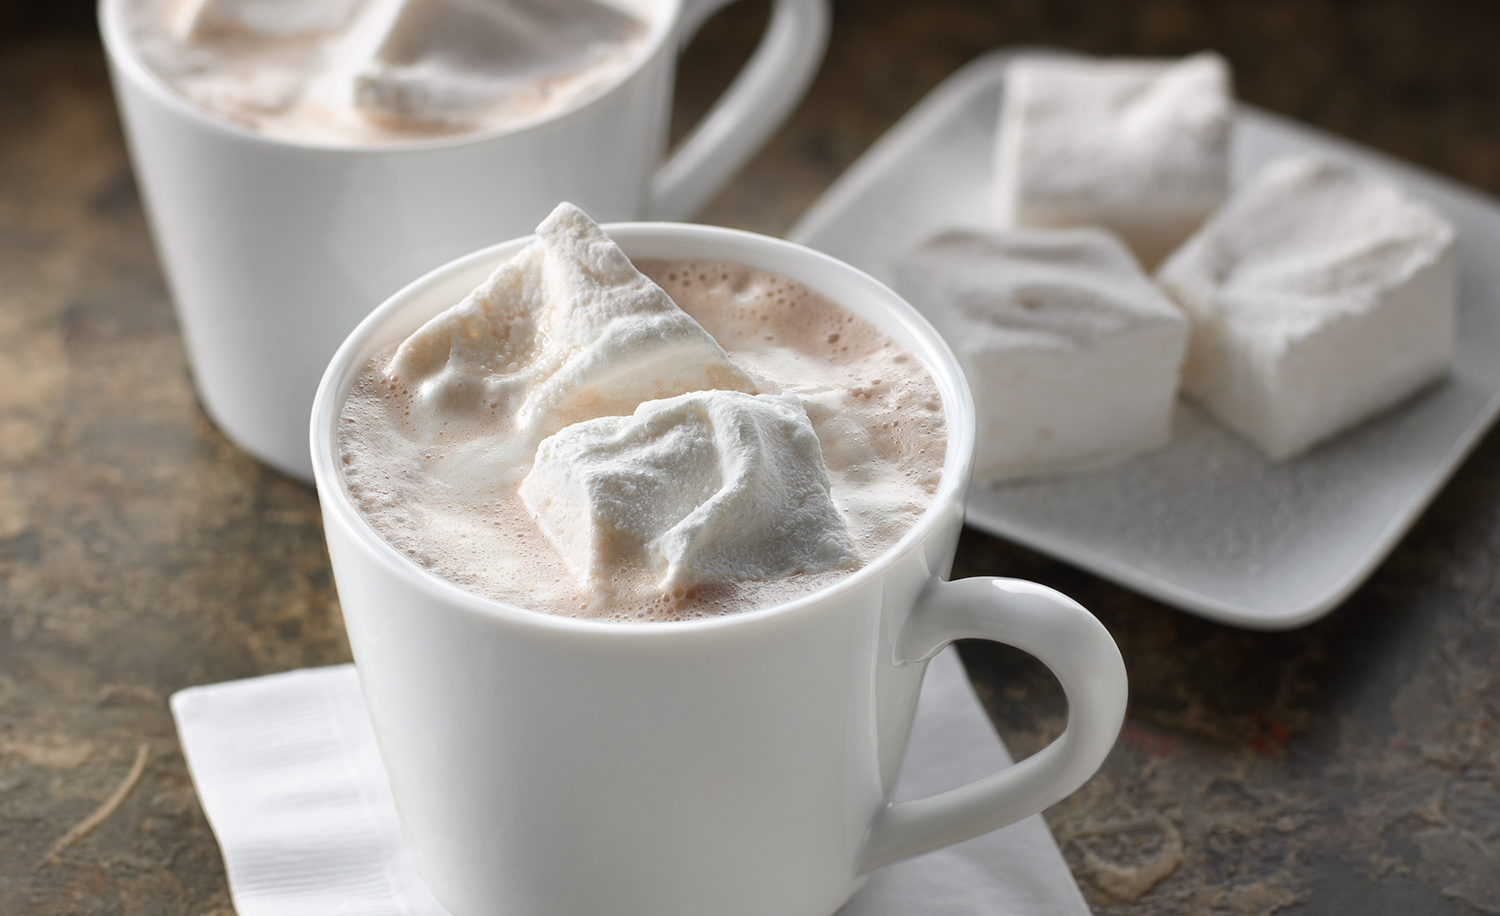 Hot Chocolate With Homemade Marshmallows | Tony Kubat Photograph